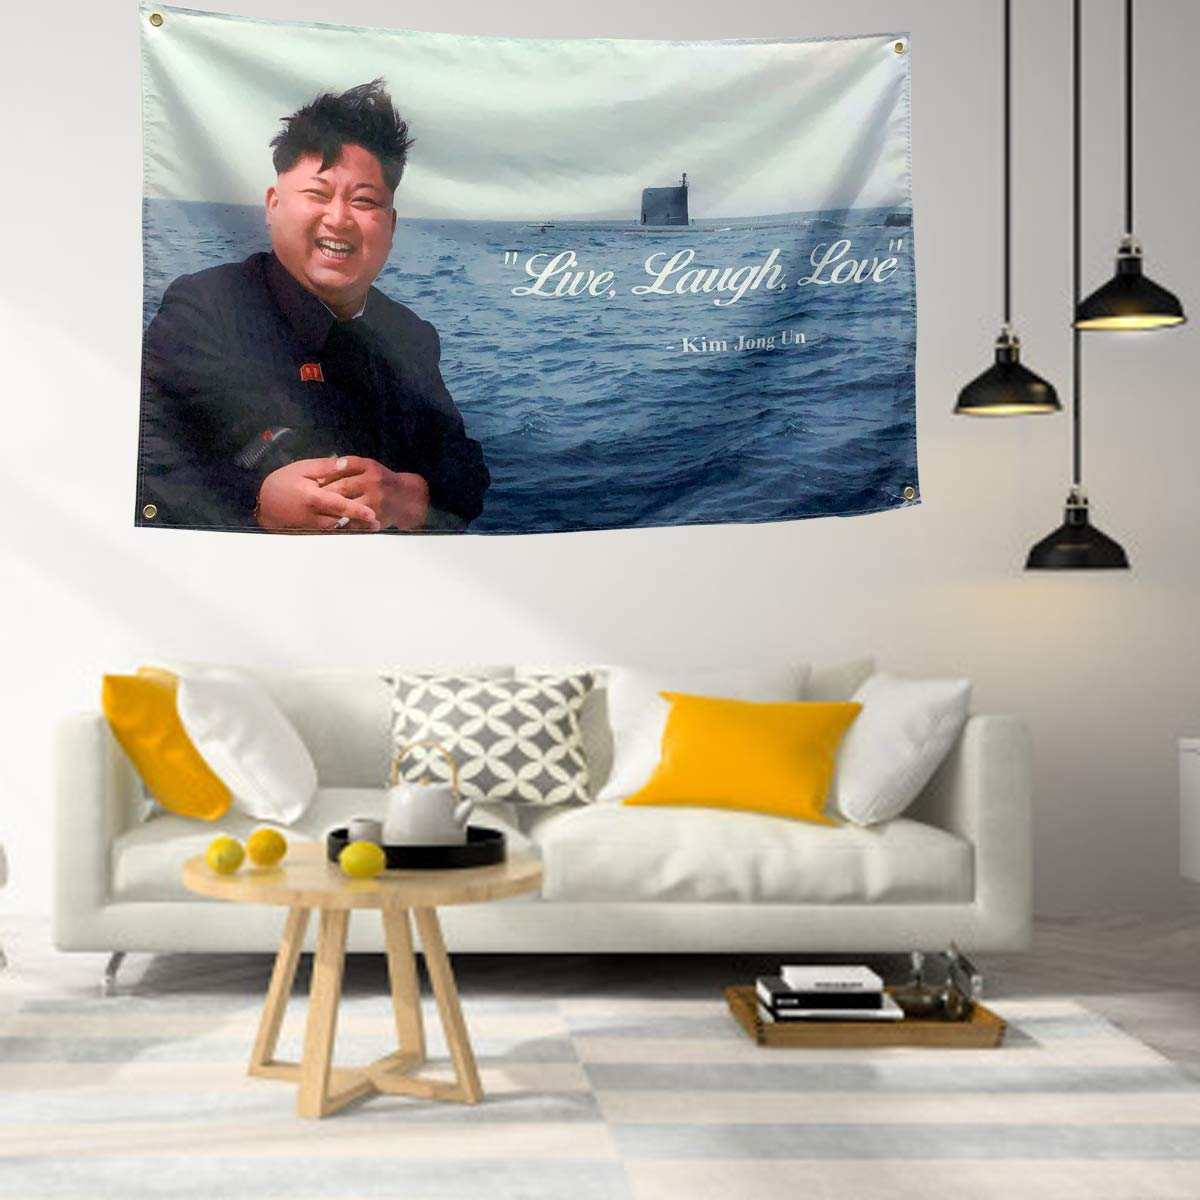 3x5 Ft Live Laugh Love Flag Kim Jong Un Banner Funny Flags for Room College Dorm Decor Indoor Bedroom Sign Heavy Wind with Brass Grommets (3*5 ft) 3*5 ft